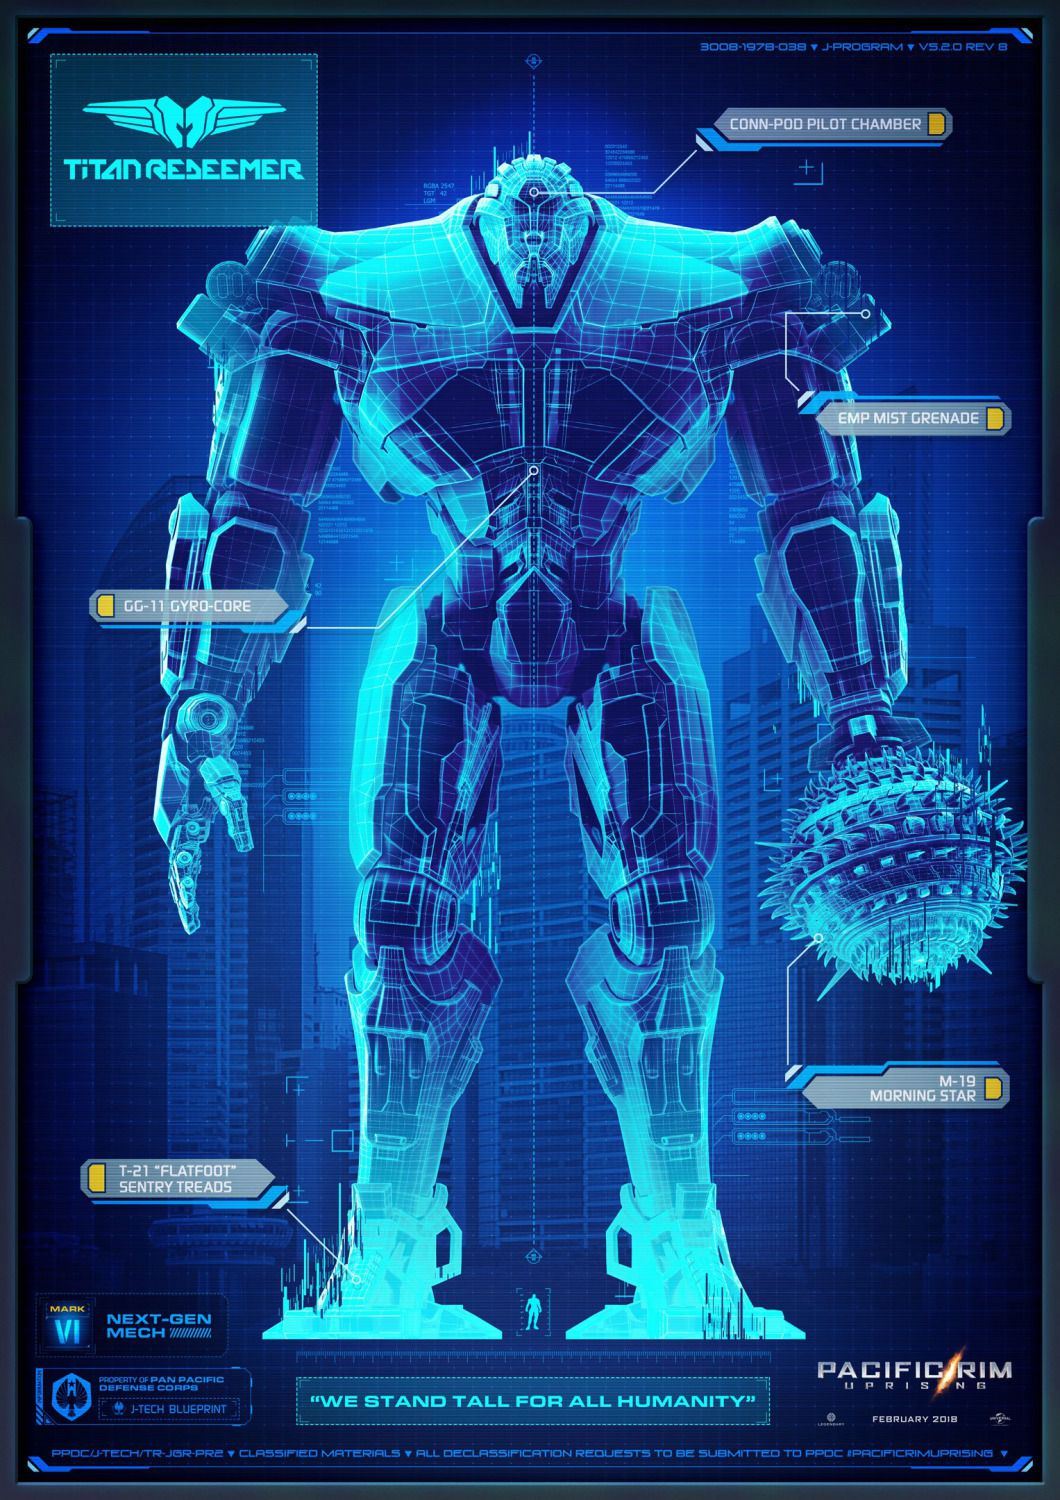 Pacific Rim Uprising - Titan Redeemer - Pan Pacific Defense Corps